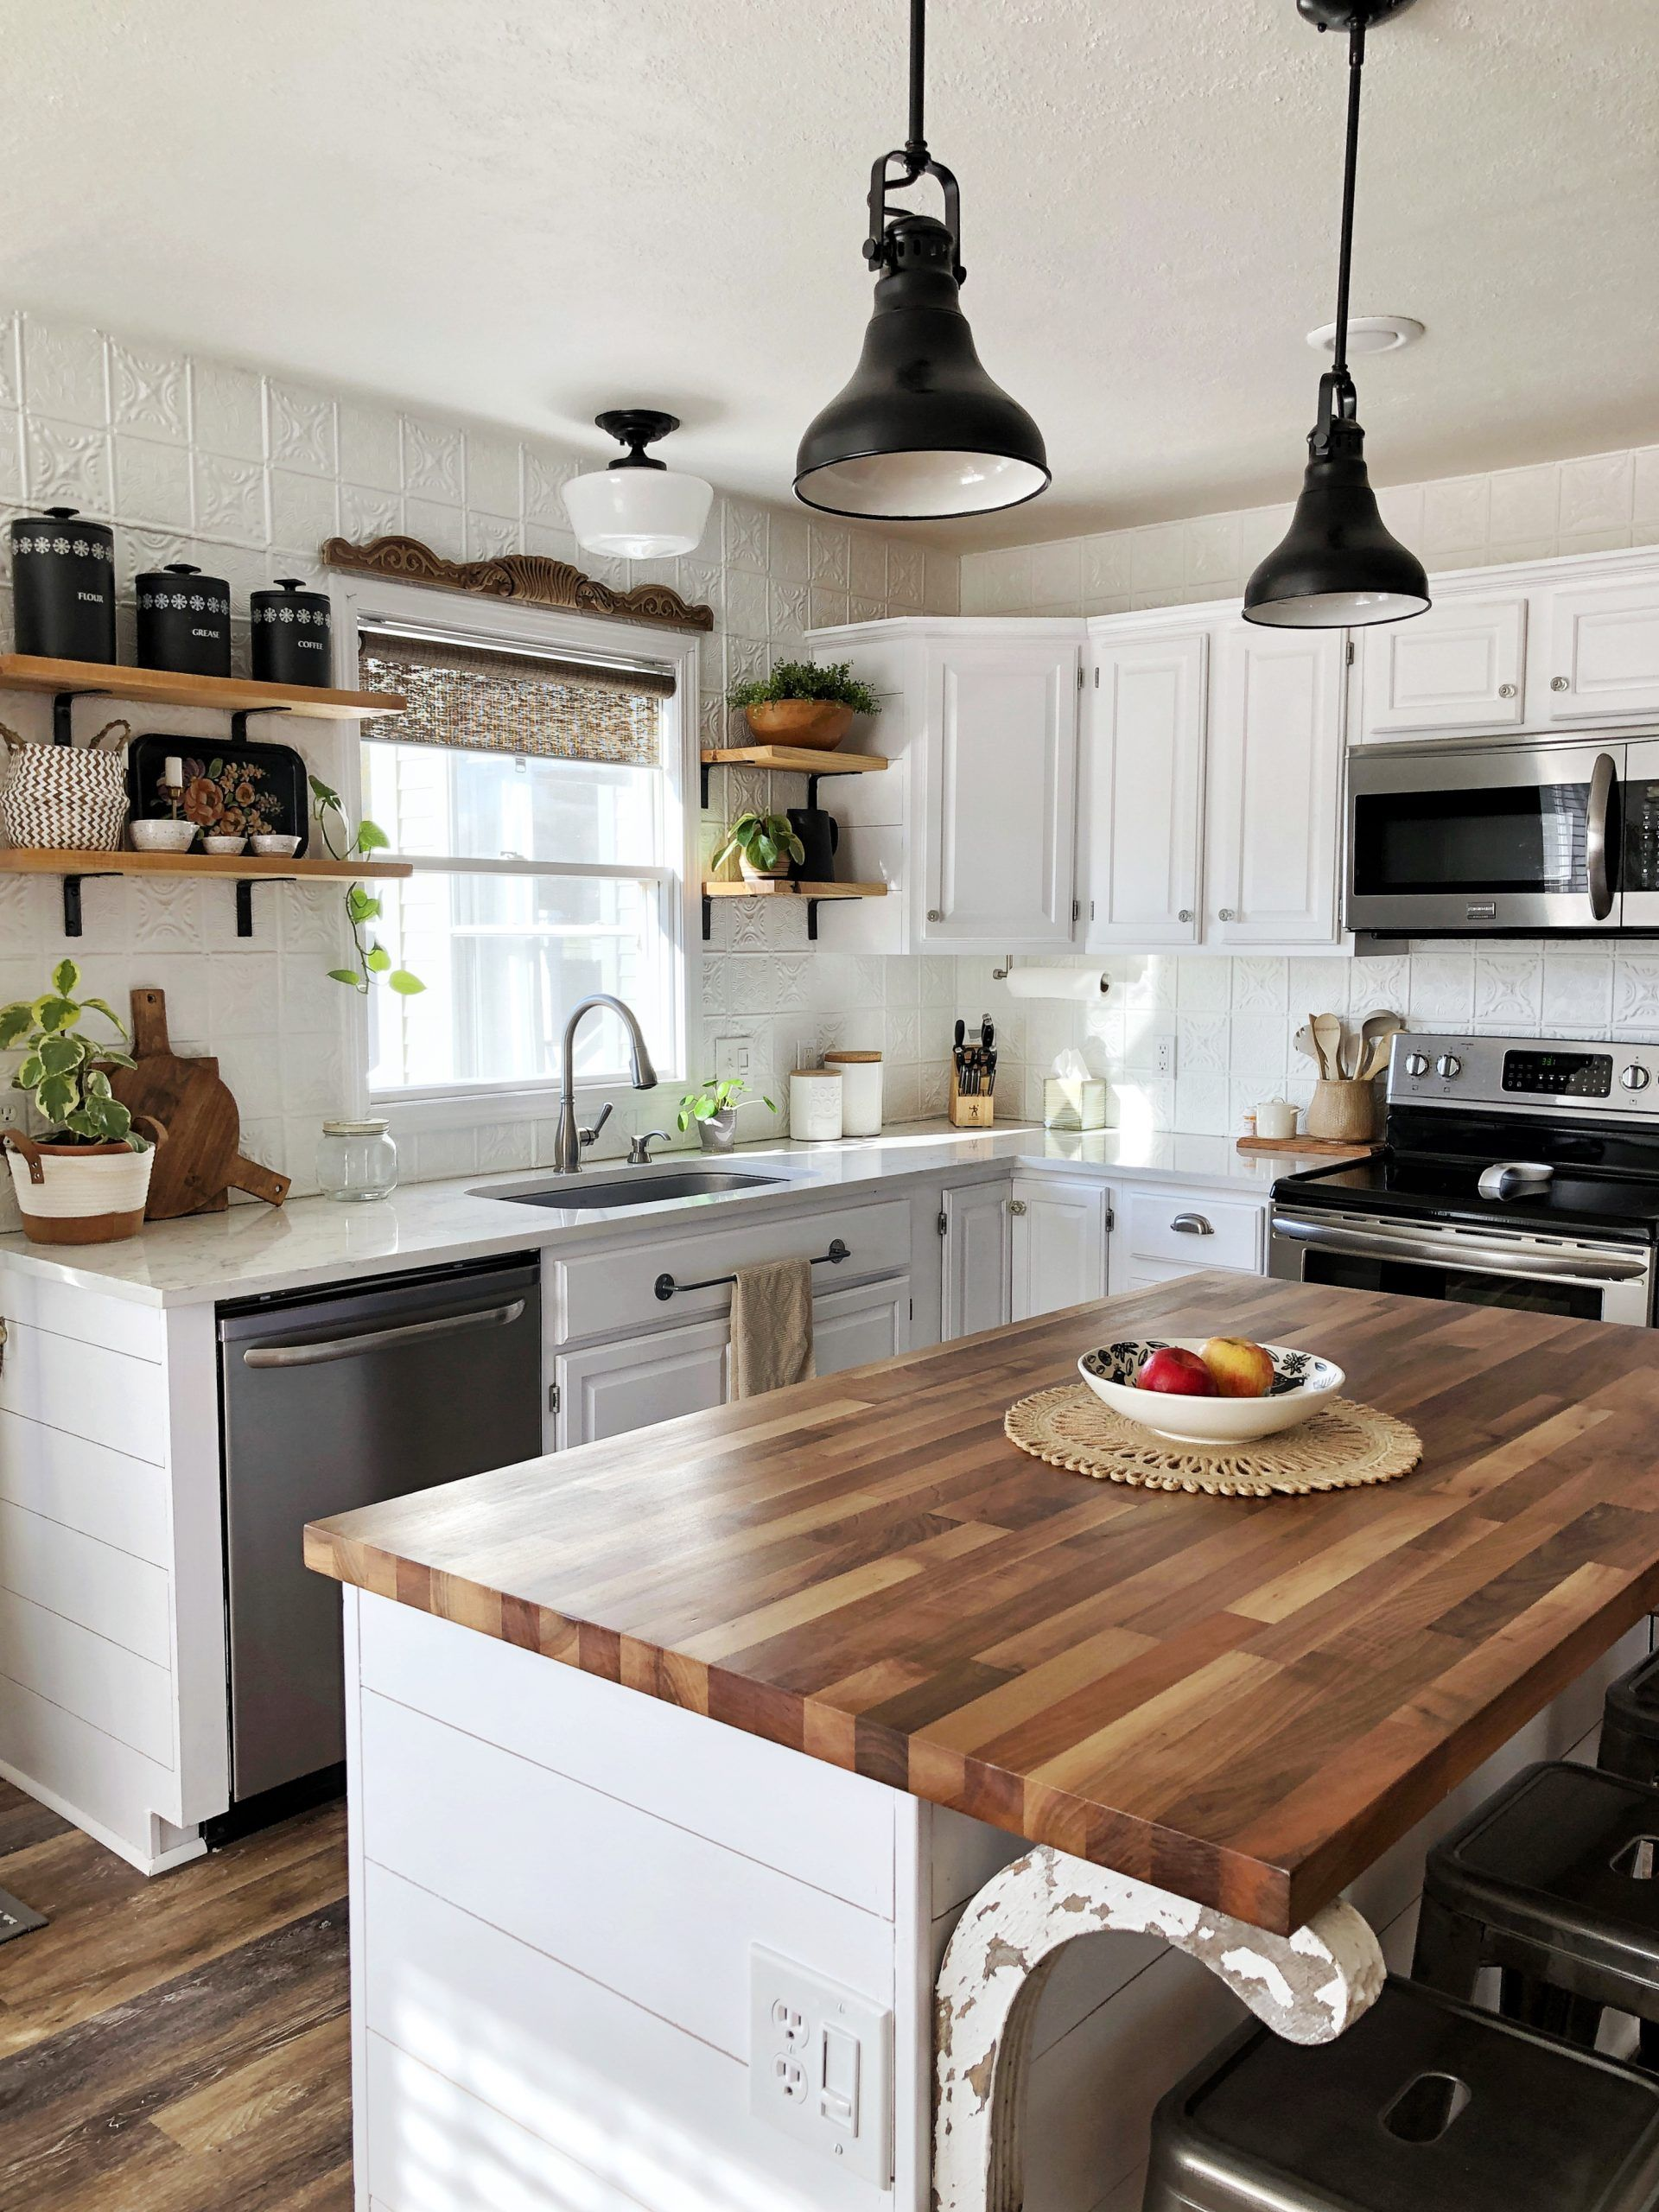 to my Spring Boho Farmhouse Kitchen! in 2020 (With